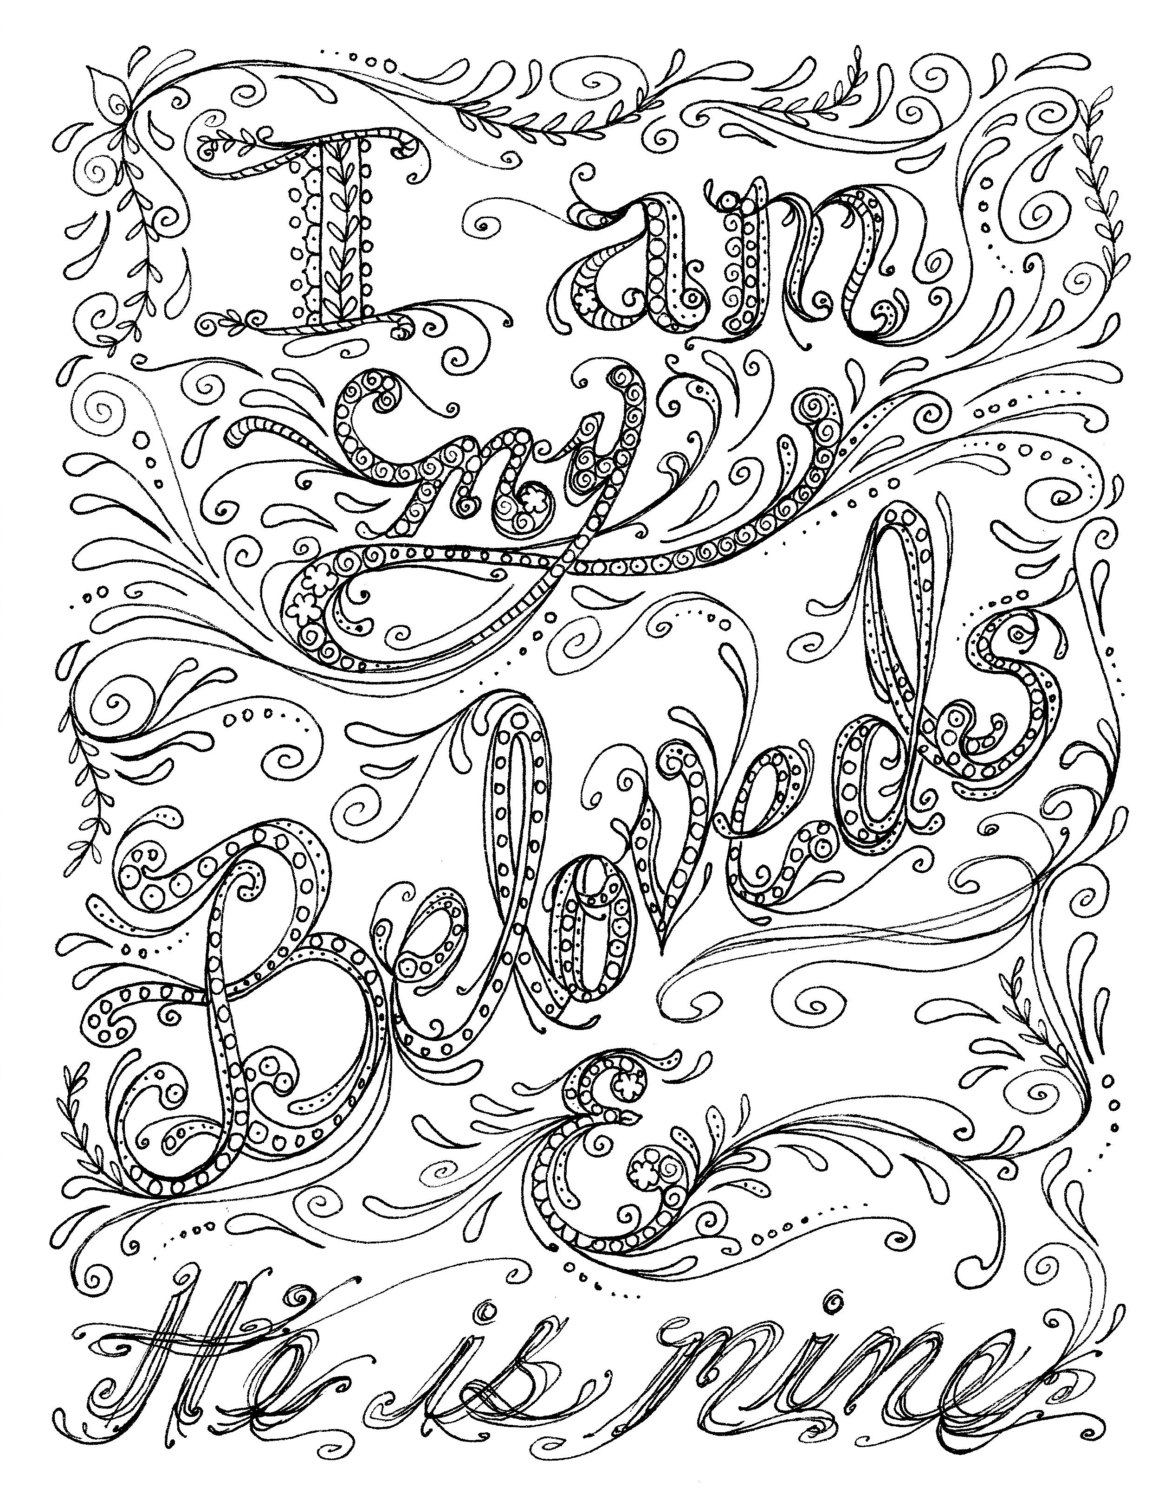 bible verse christian coloring pages 5 bible verse coloring pages inspiration quotes diy coloring pages bible christian verse